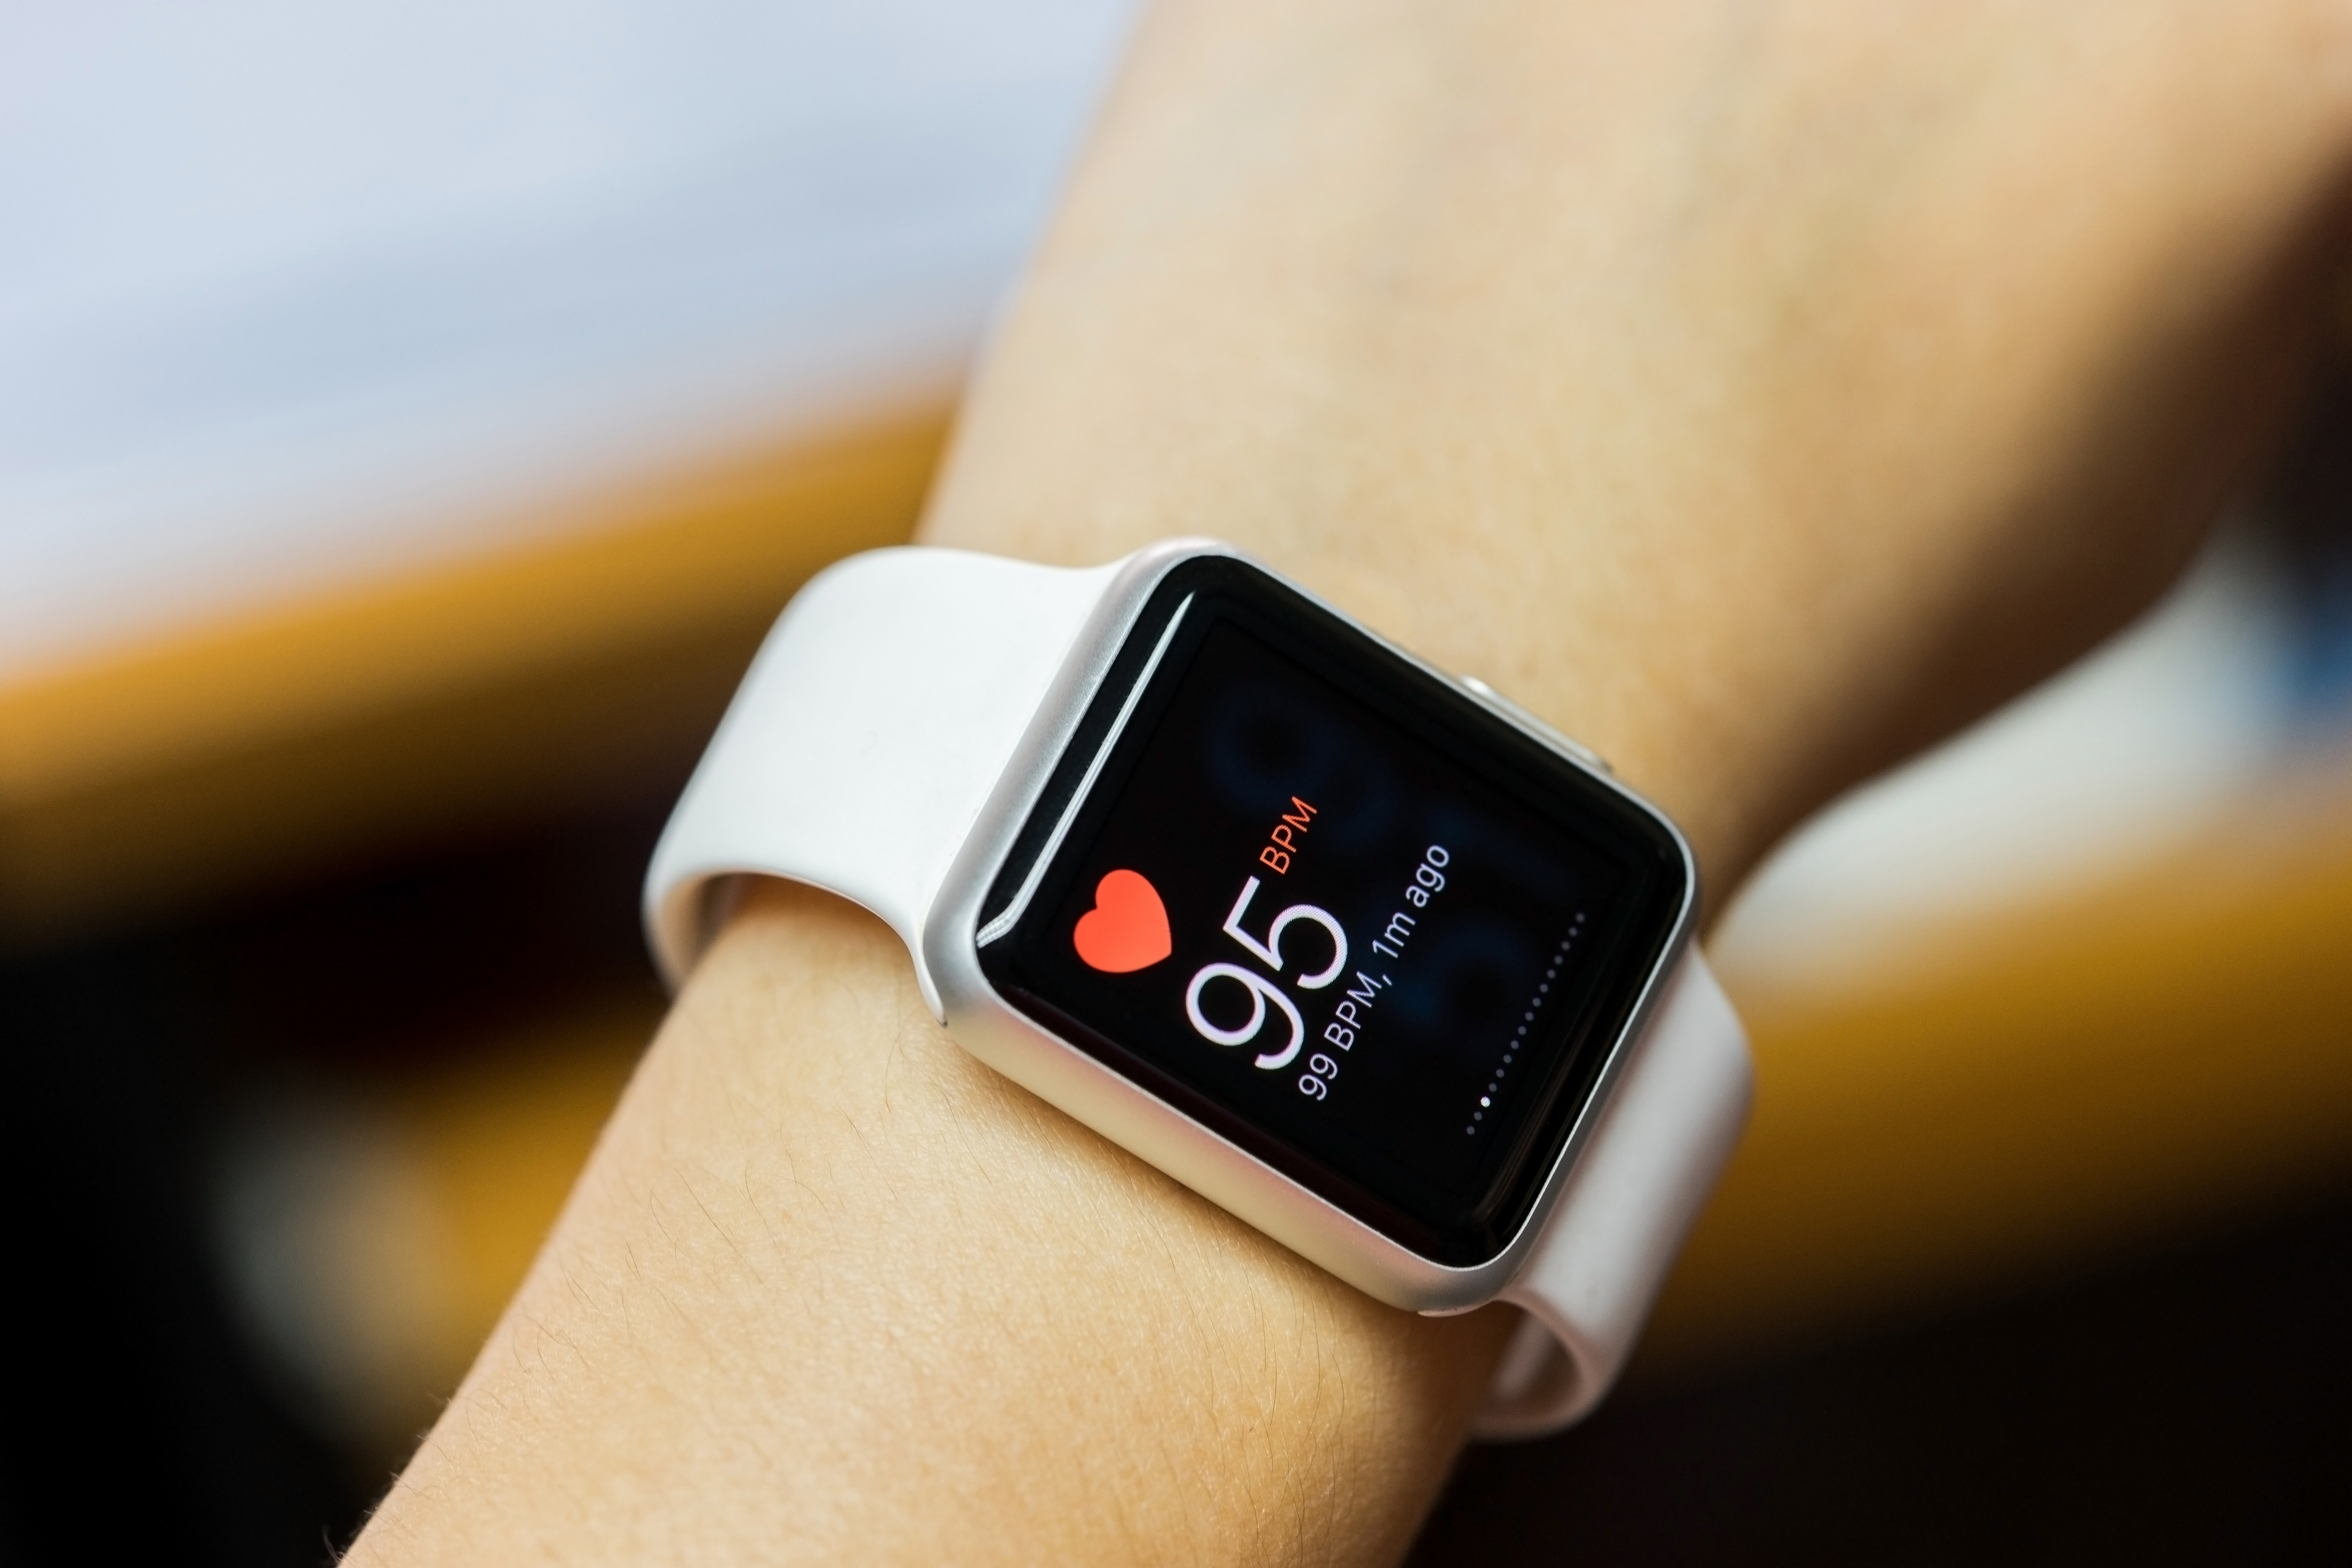 a2f947bf3 Beware the hype over the Apple Watch heart app. The device could do more  harm than good